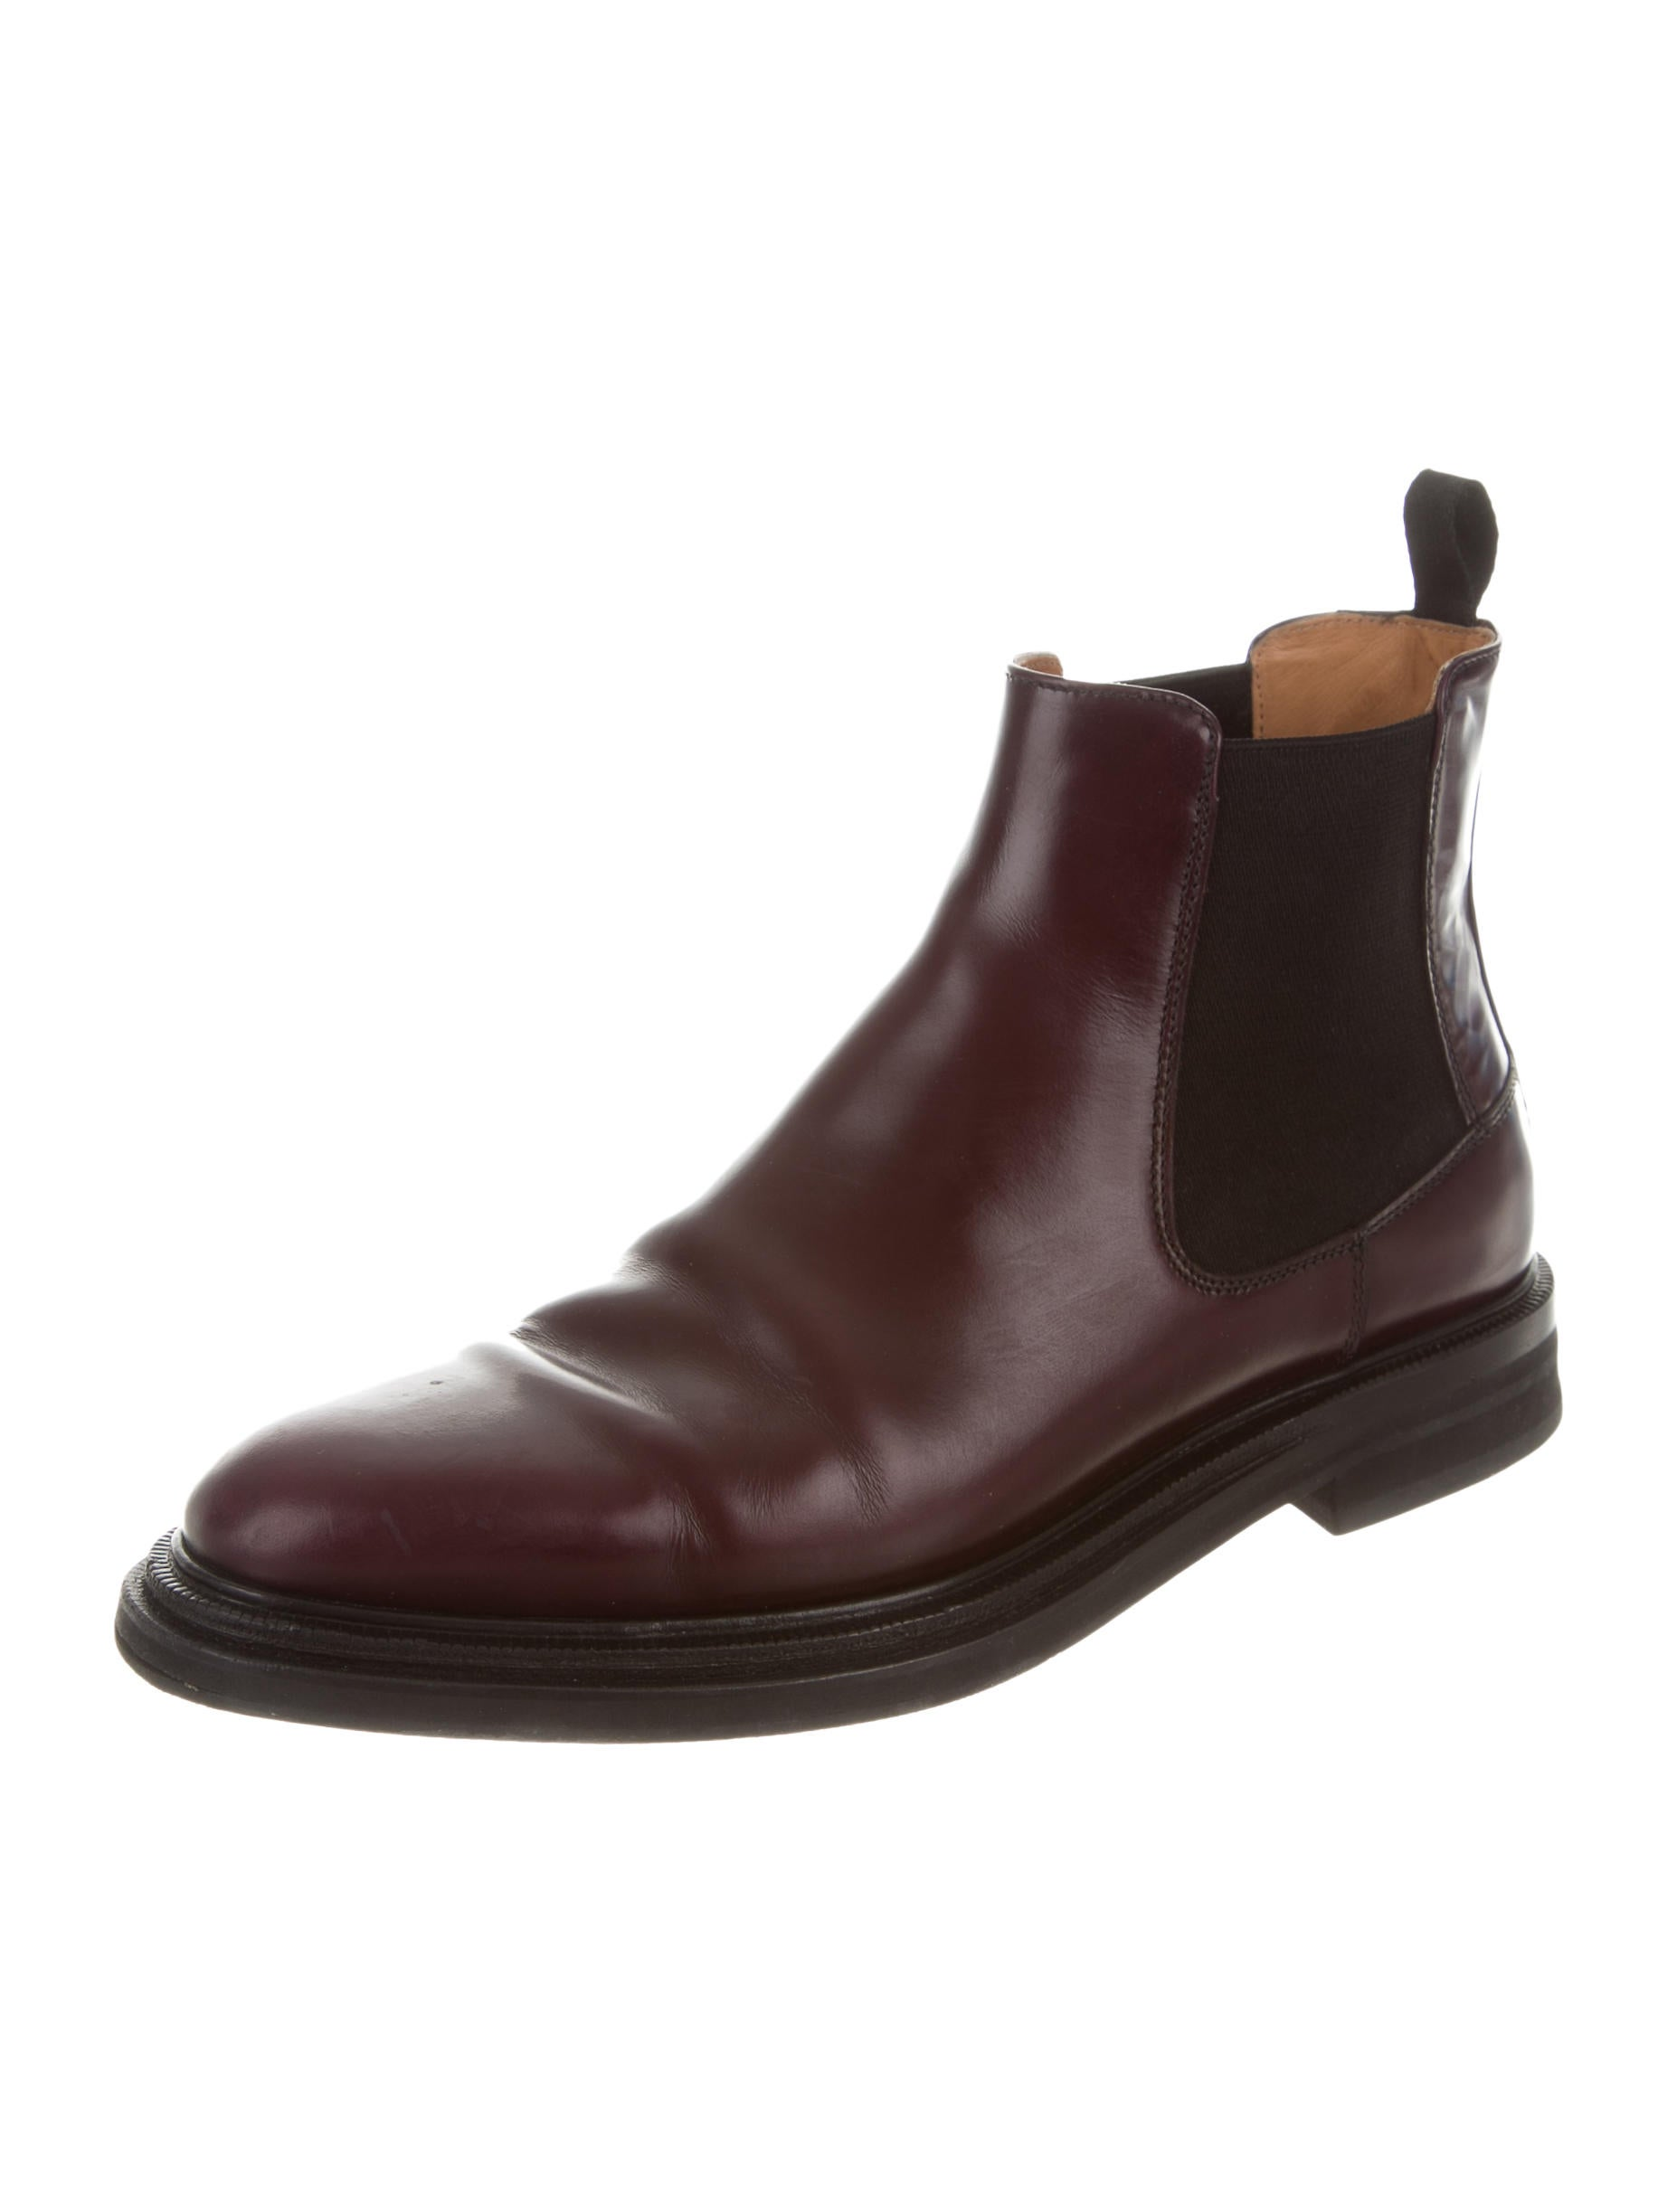 Electric Karma London Boot Chelsea Brown Round Faux Leather Ankle Boots GBX Packer Men's Genuine Leather Chelsea Boots Casual Slip On Ankle Boots See more like this. John Varvatos USA Chelsea Boots Size 9 Brown Leather Wing Tip. Pre-Owned.